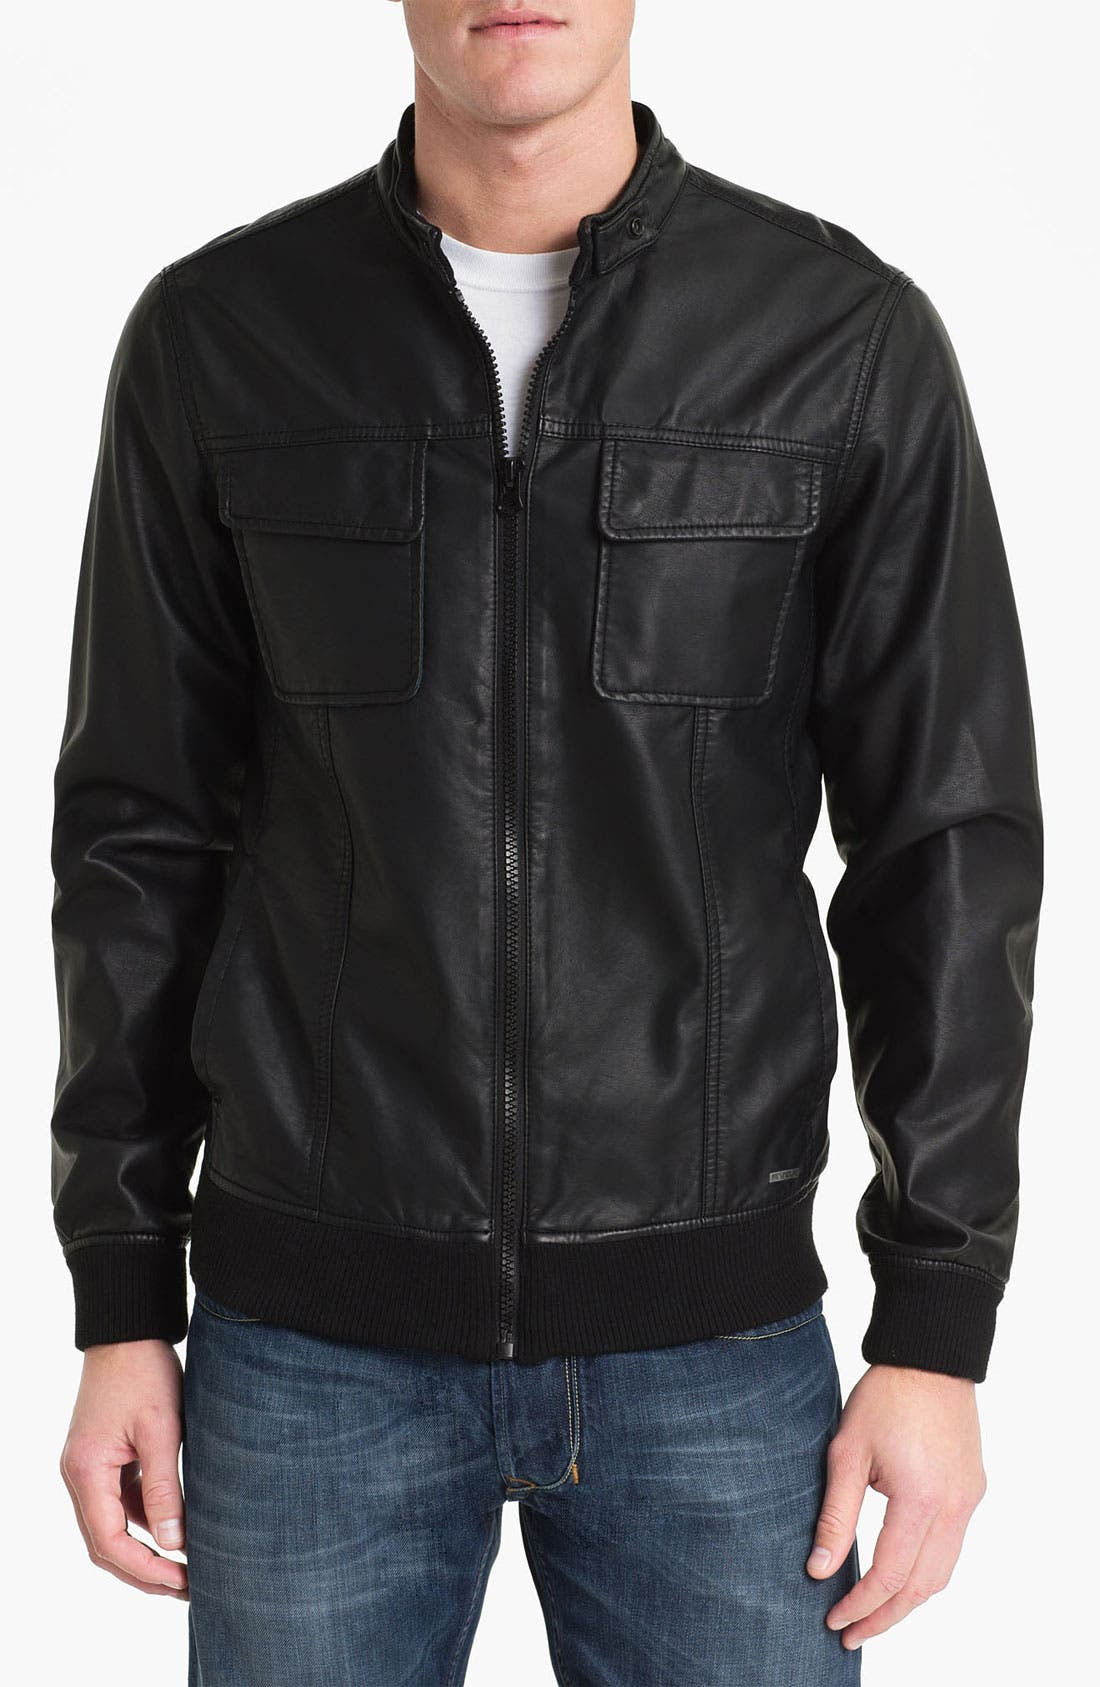 Alternate Image 1 Selected - RVCA 'Crasher' Faux Leather Jacket